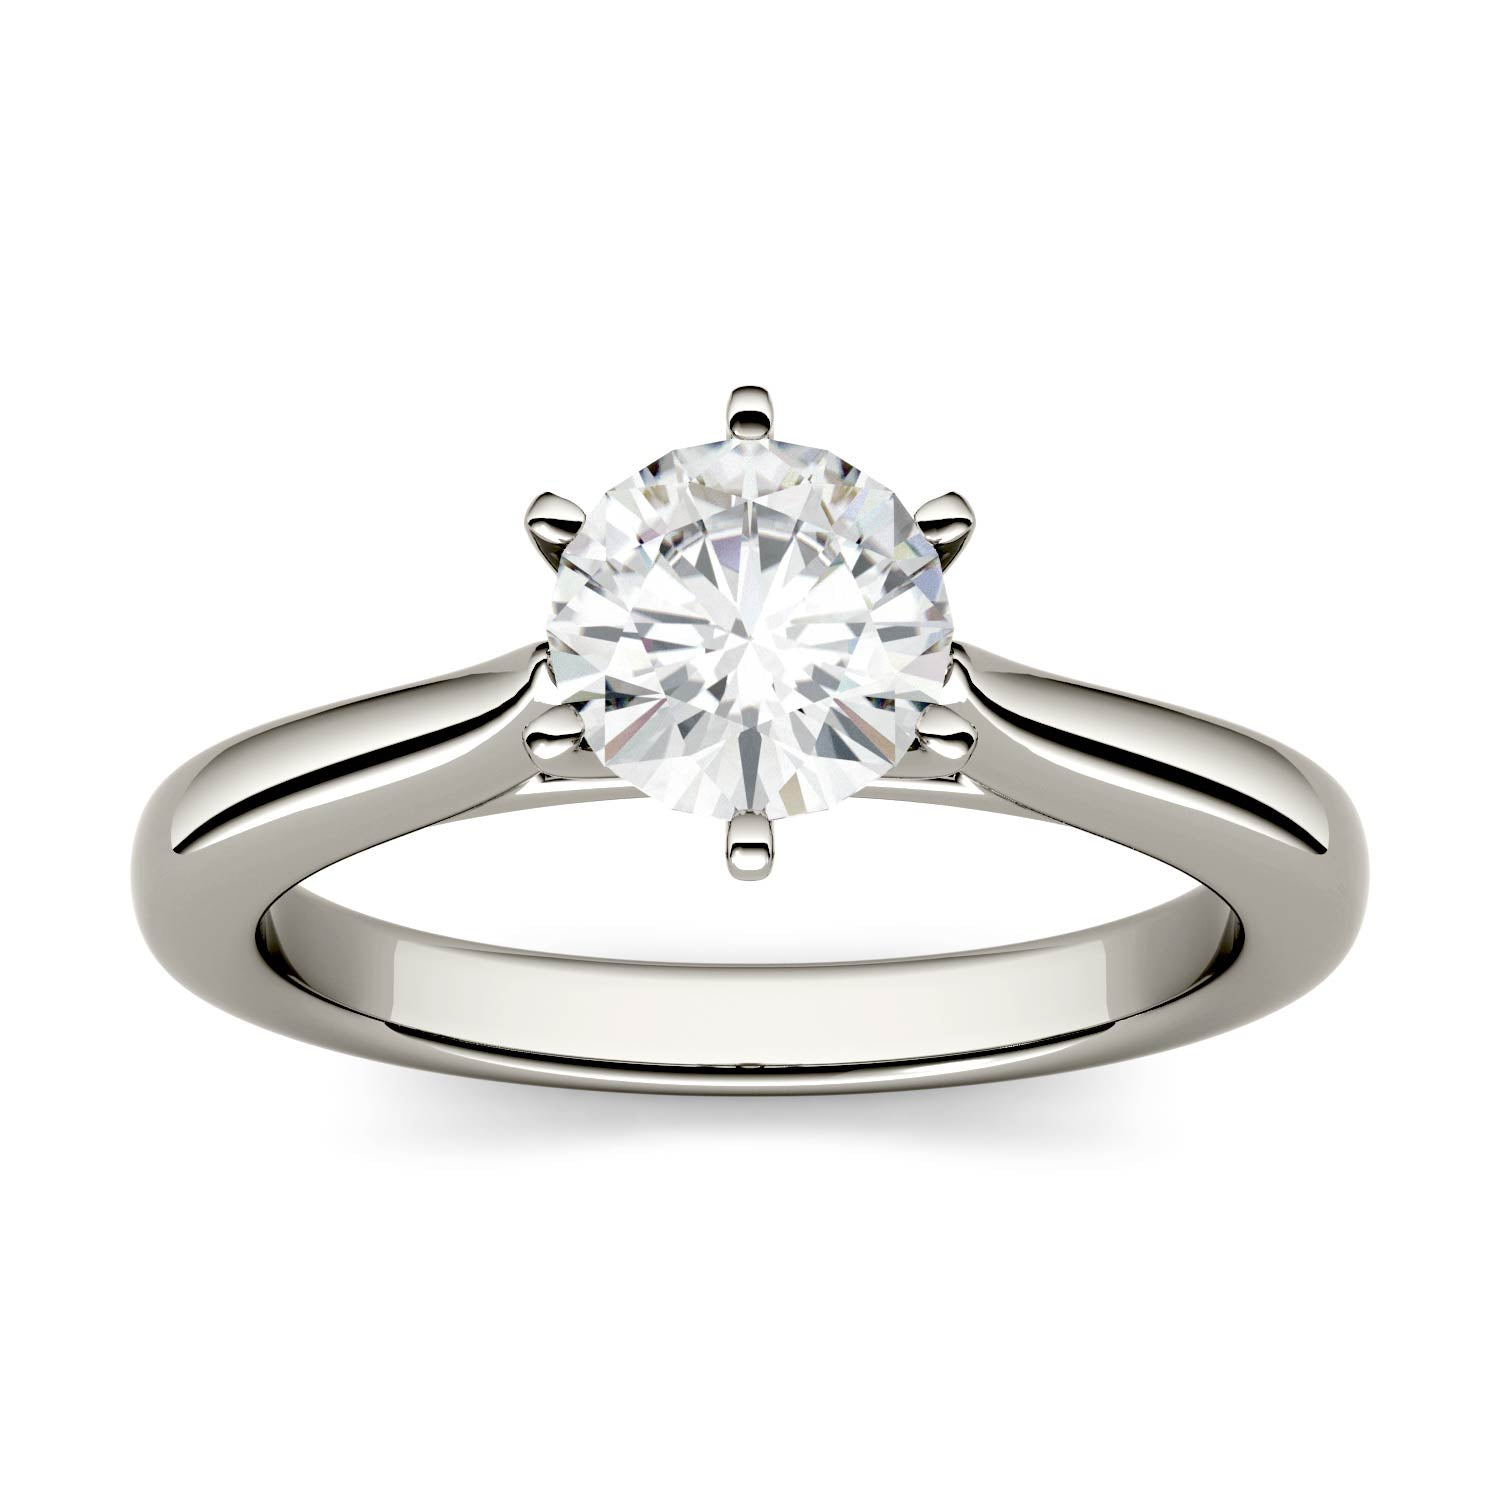 1 Carat TW Charles & Colvard Moissanite Solitaire Engagement Ring in White Gold-612263 - Jewelry by Johan